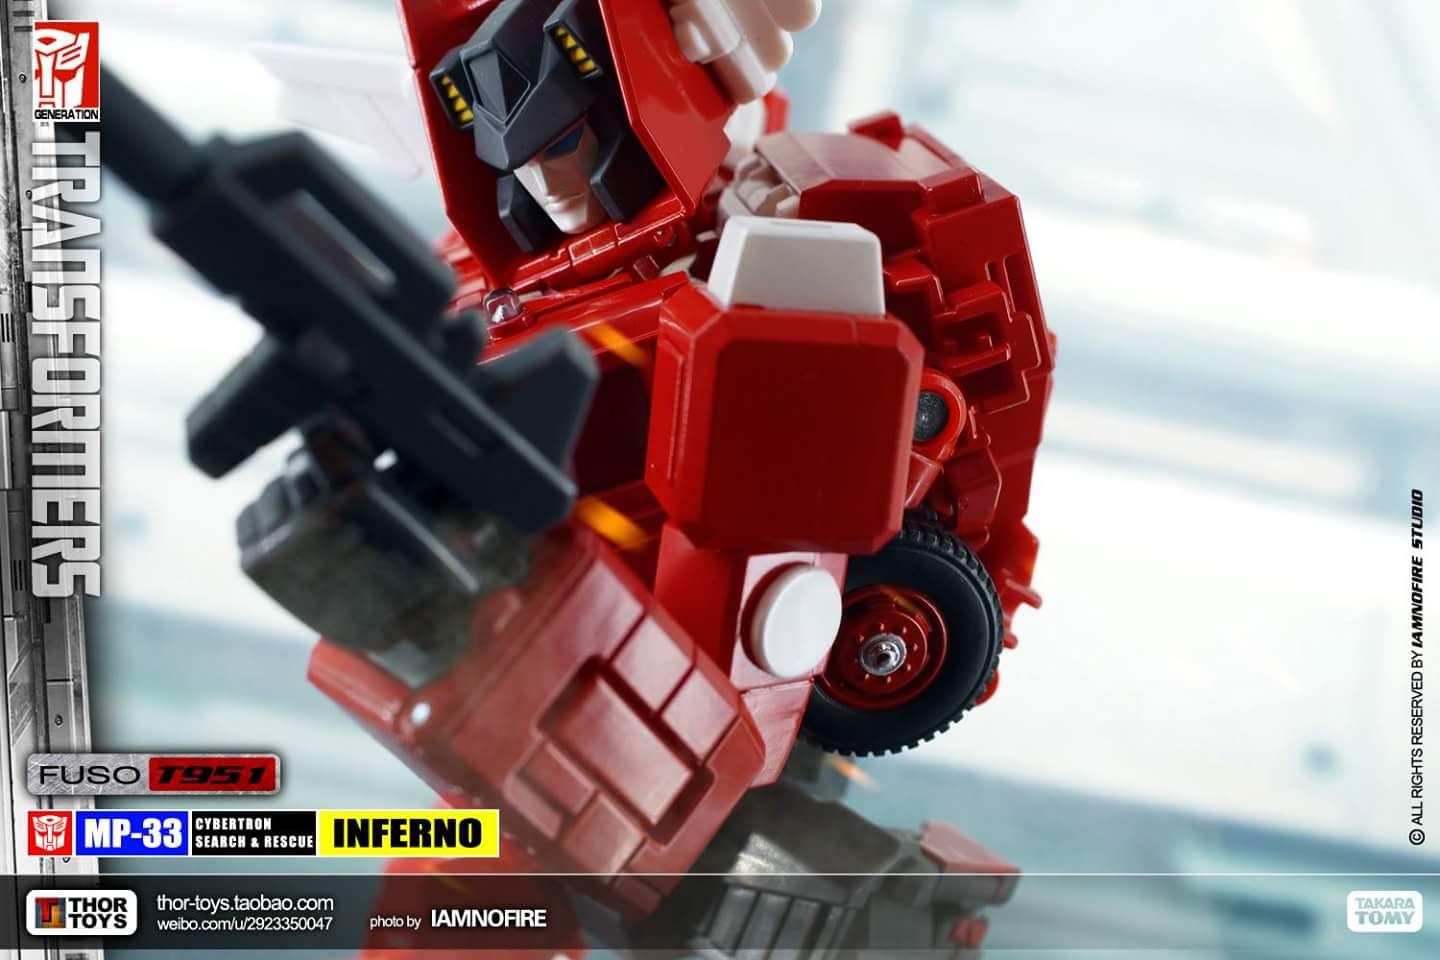 [Masterpiece] MP-33 Inferno - Page 6 TteQc5sa